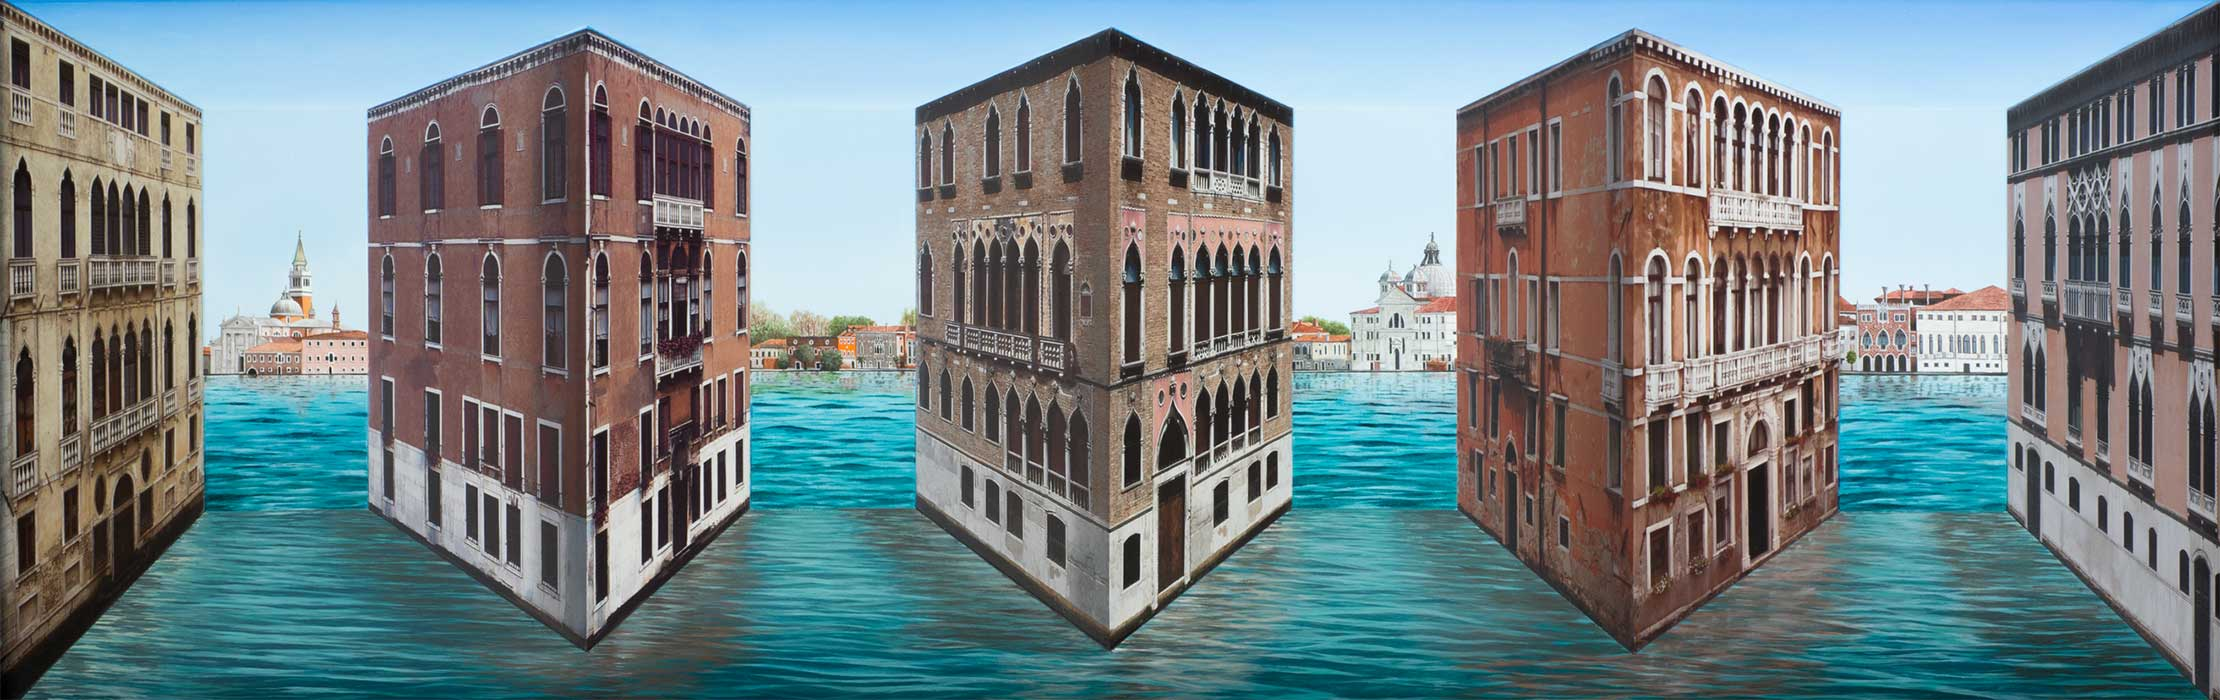 Floating Palazzi <p>2015 | Edition 5 | 51 x 156 x 21 cm / 20 x 61½ x 8¼ in</p>